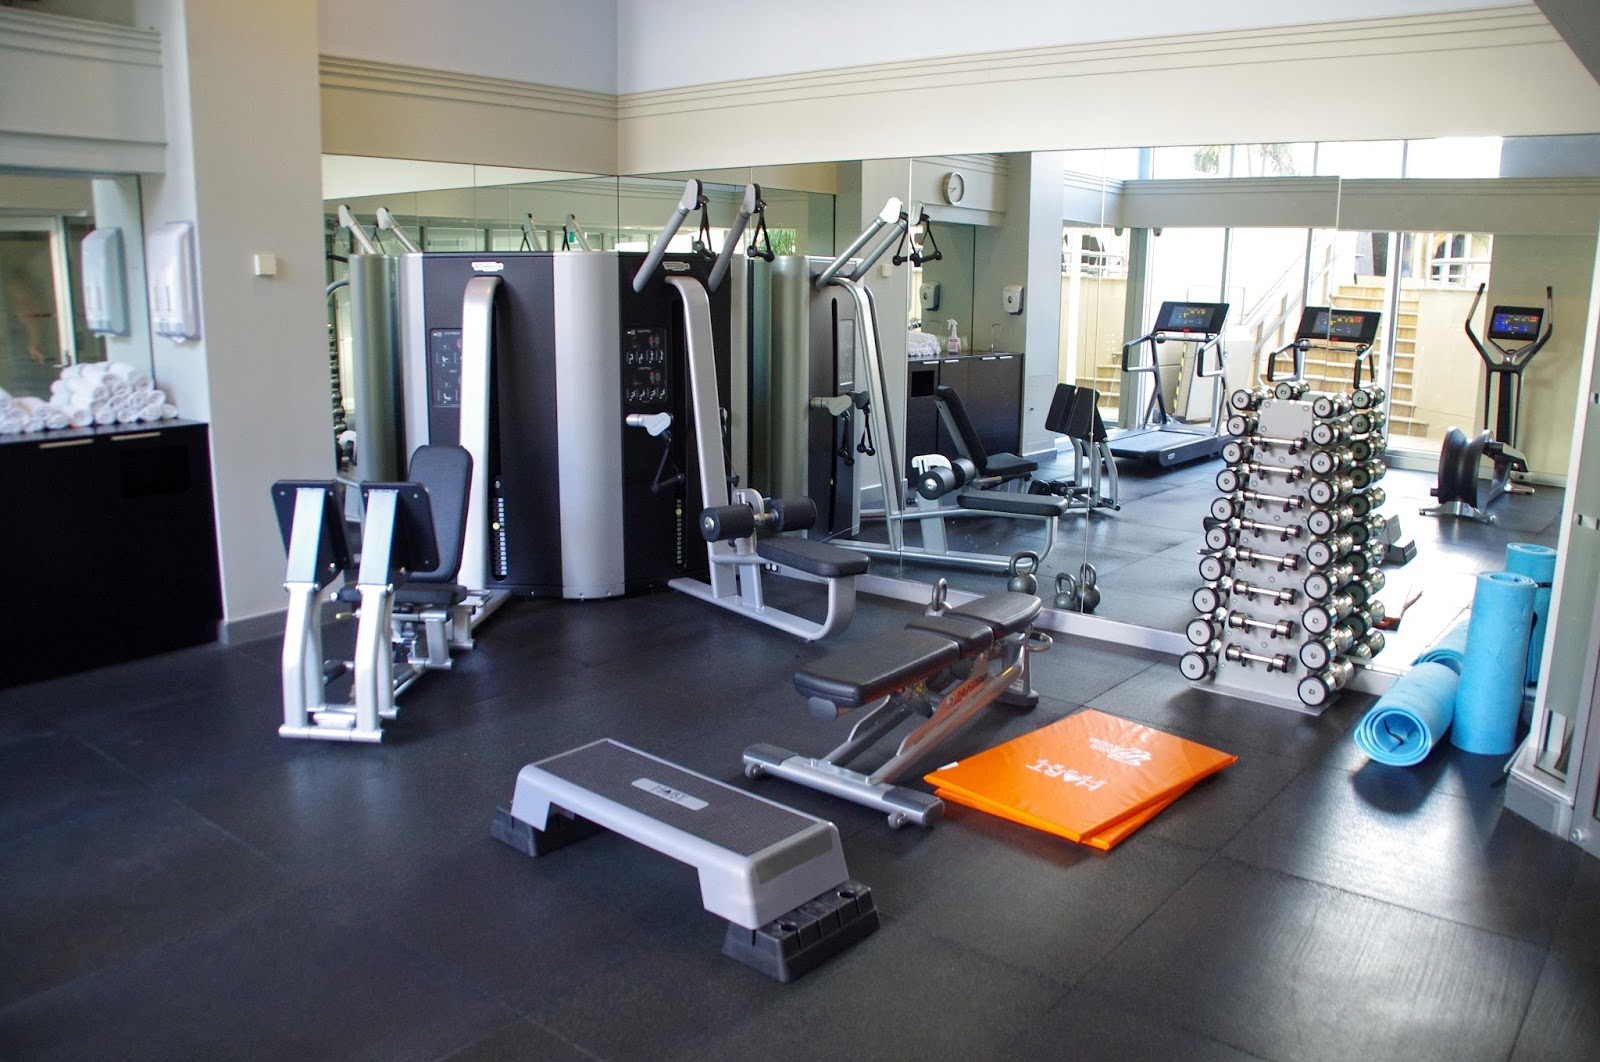 Gym at swissotel Sydney